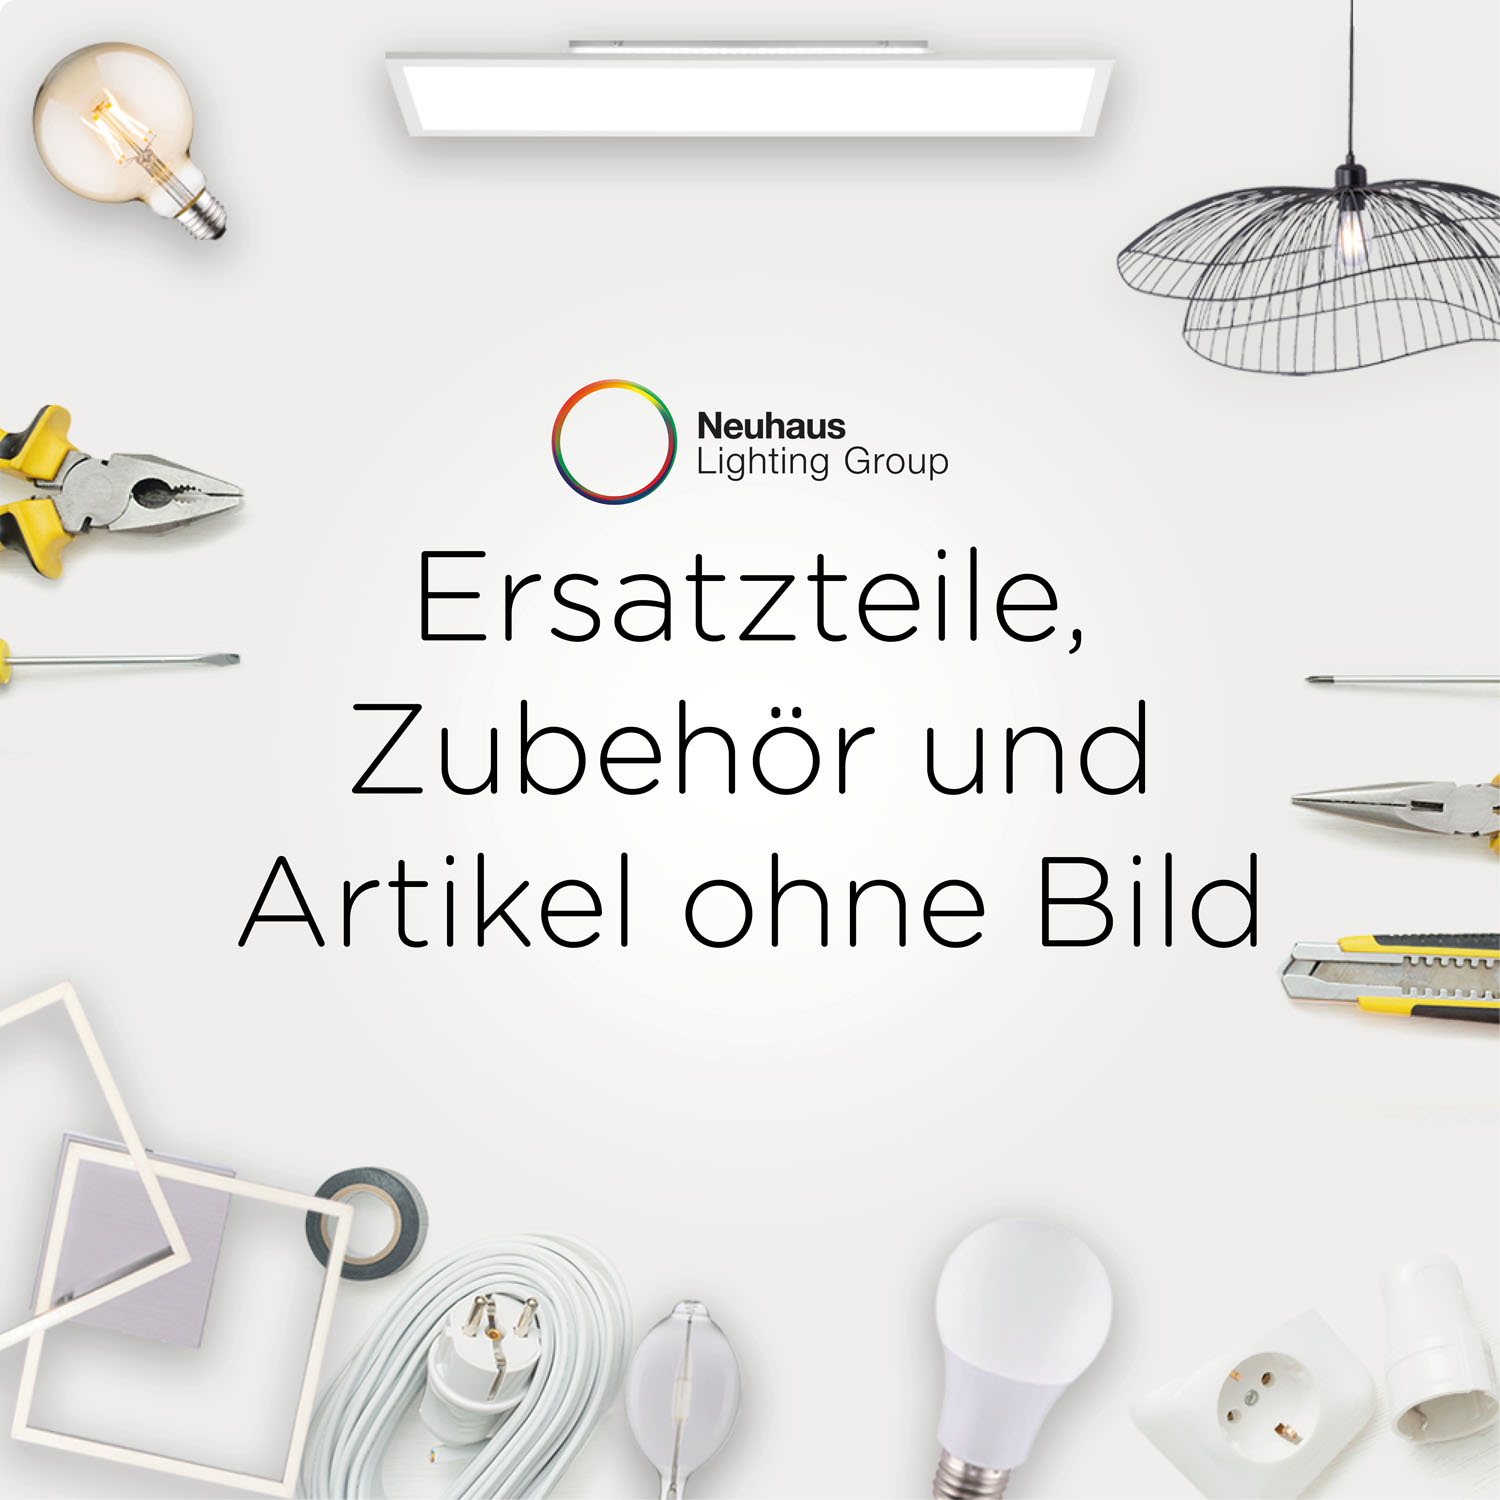 Q-SPIDER, Lichtprofil, gebogen, Smart Home